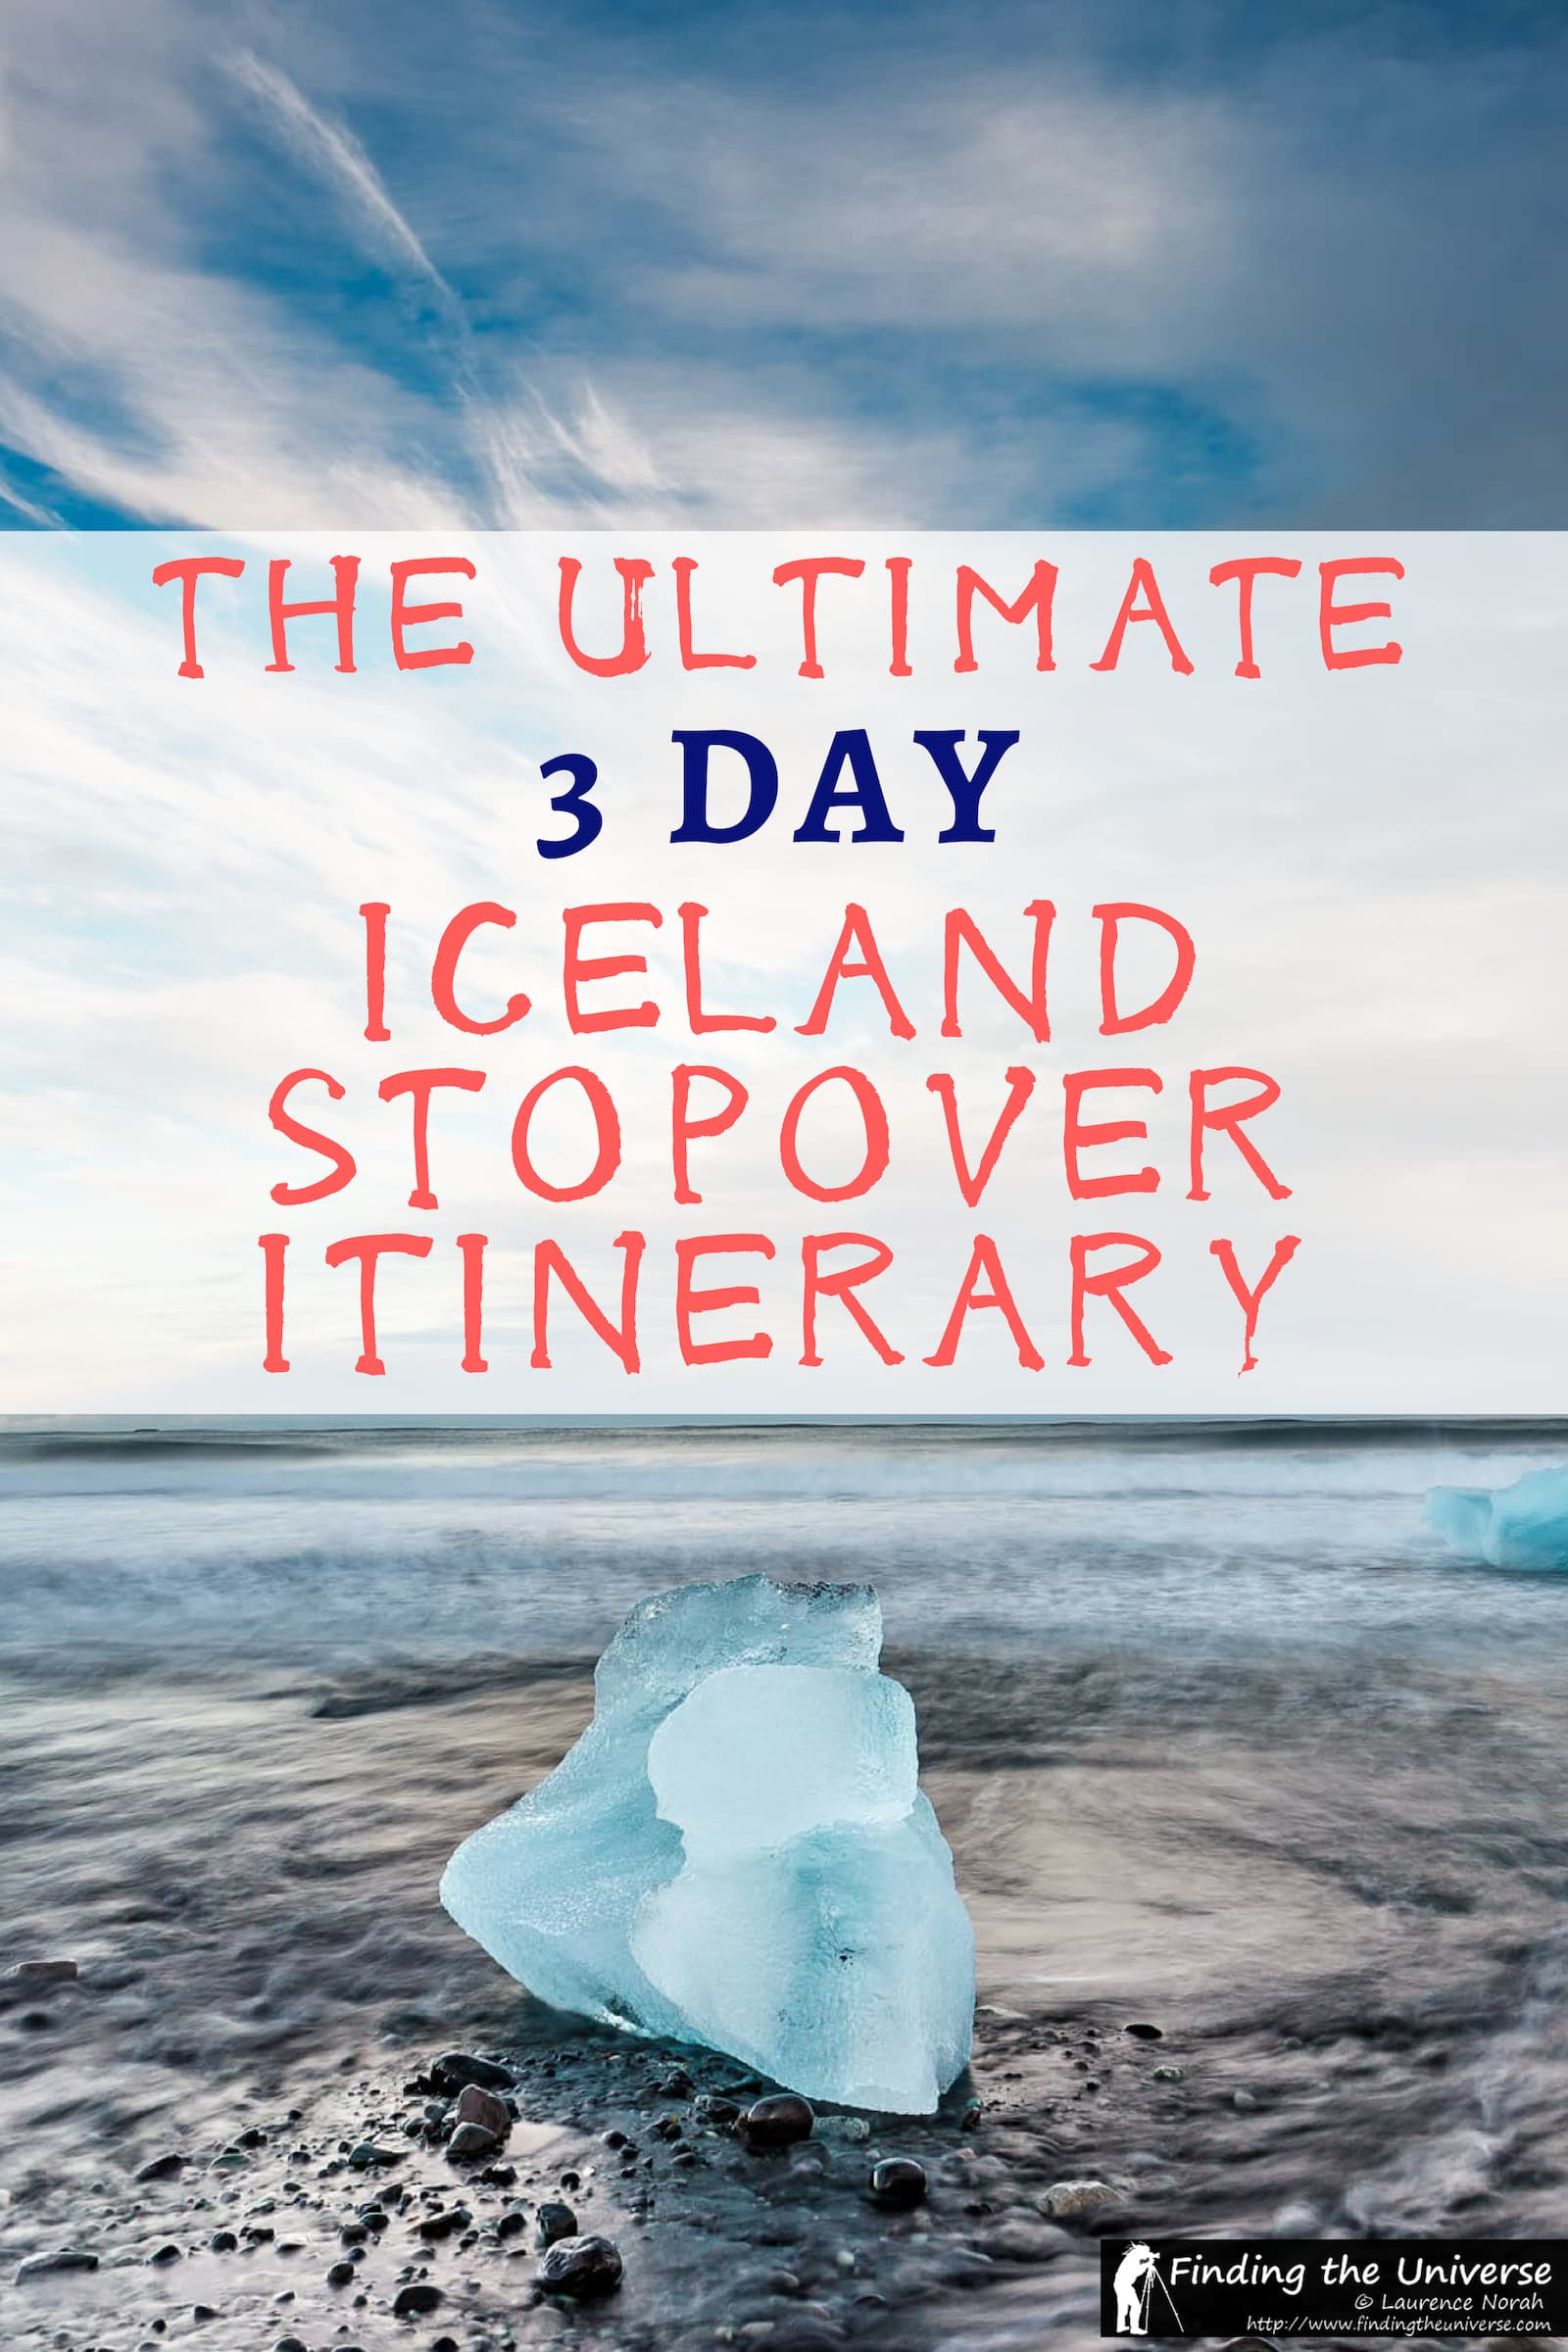 A detailed guide to spending 3 days in Iceland on a stopover. Including a 3 day self drive Iceland itinerary, as well as day and group trips suggestions!